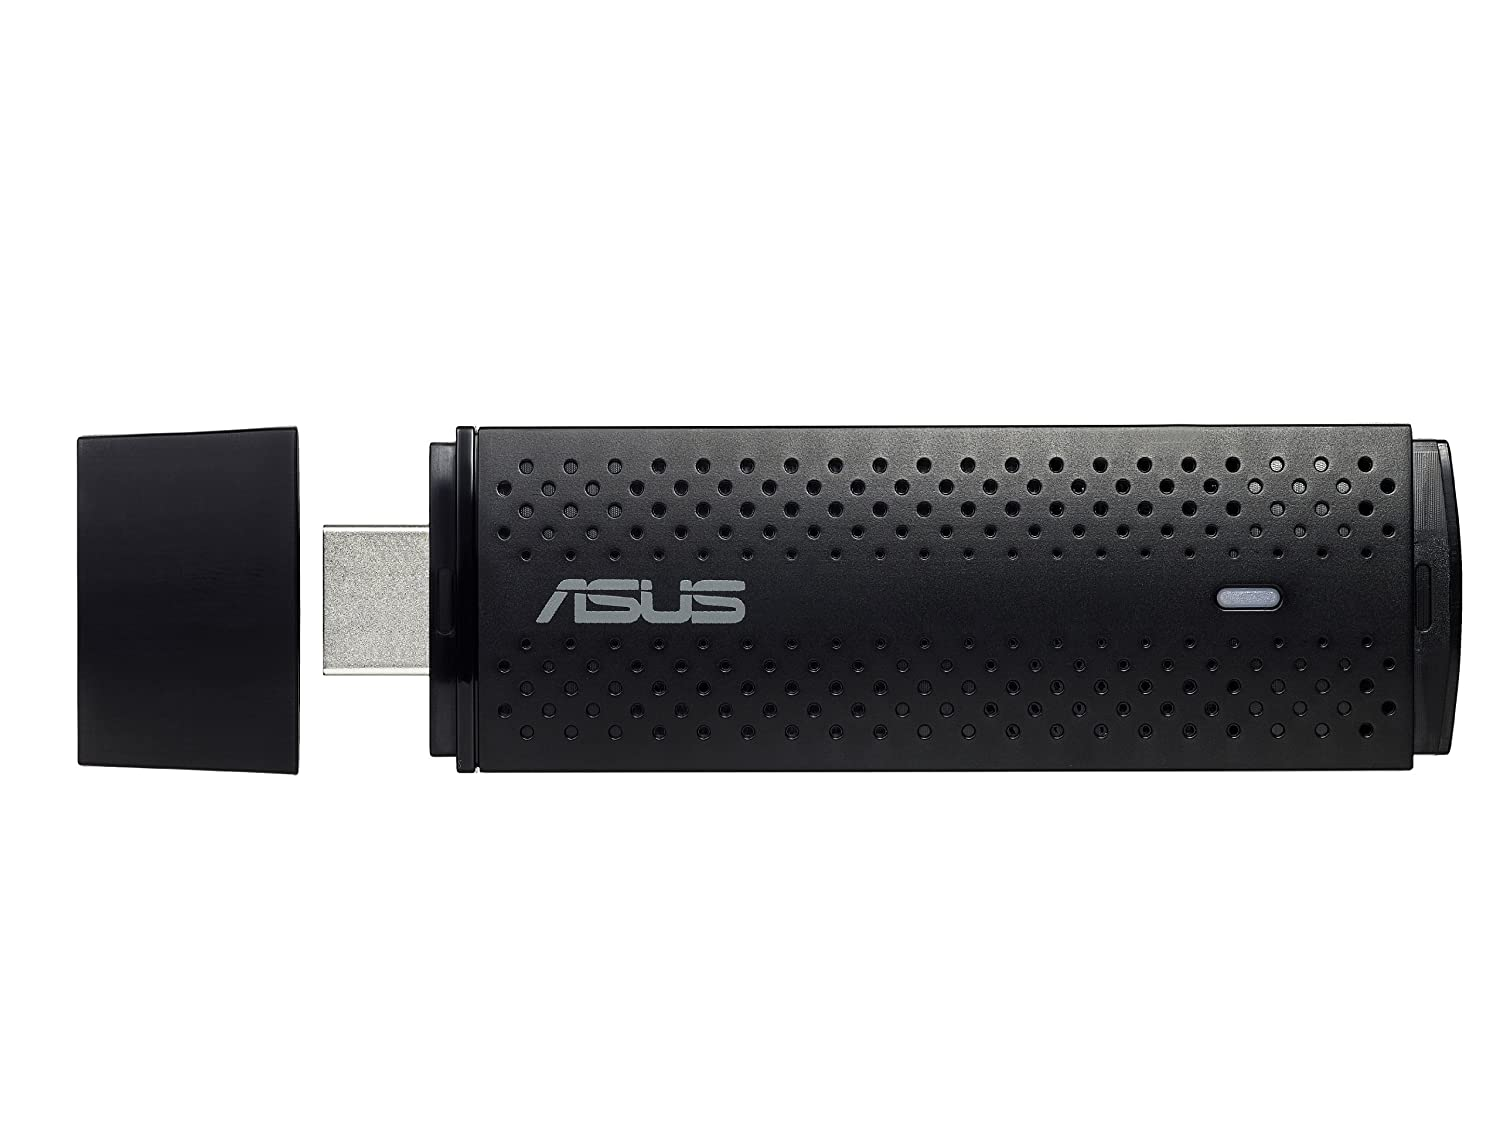 Asus Miracast Wireless Display Adapter